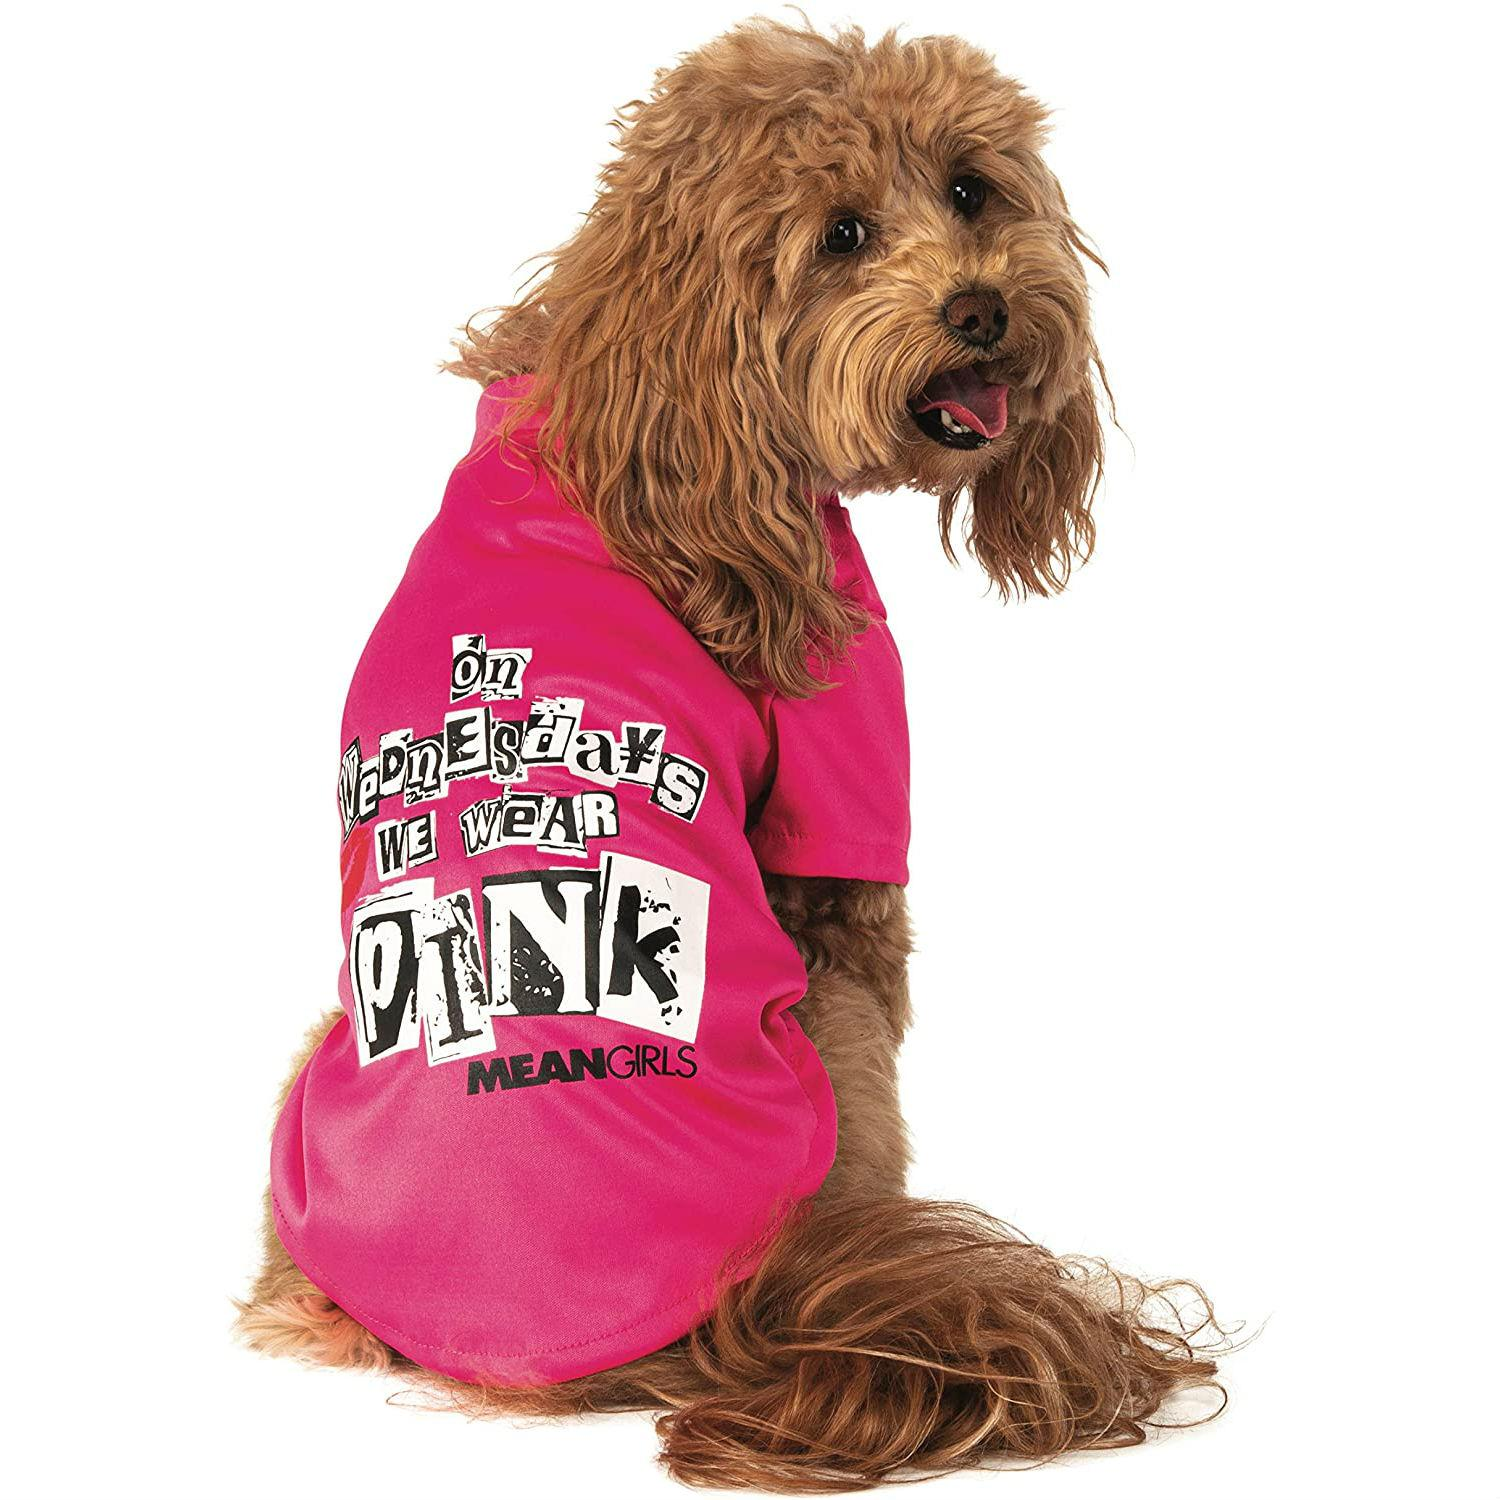 Rubie's Mean Girls On Wednesday We Wear Pink Dog T-Shirt Costume